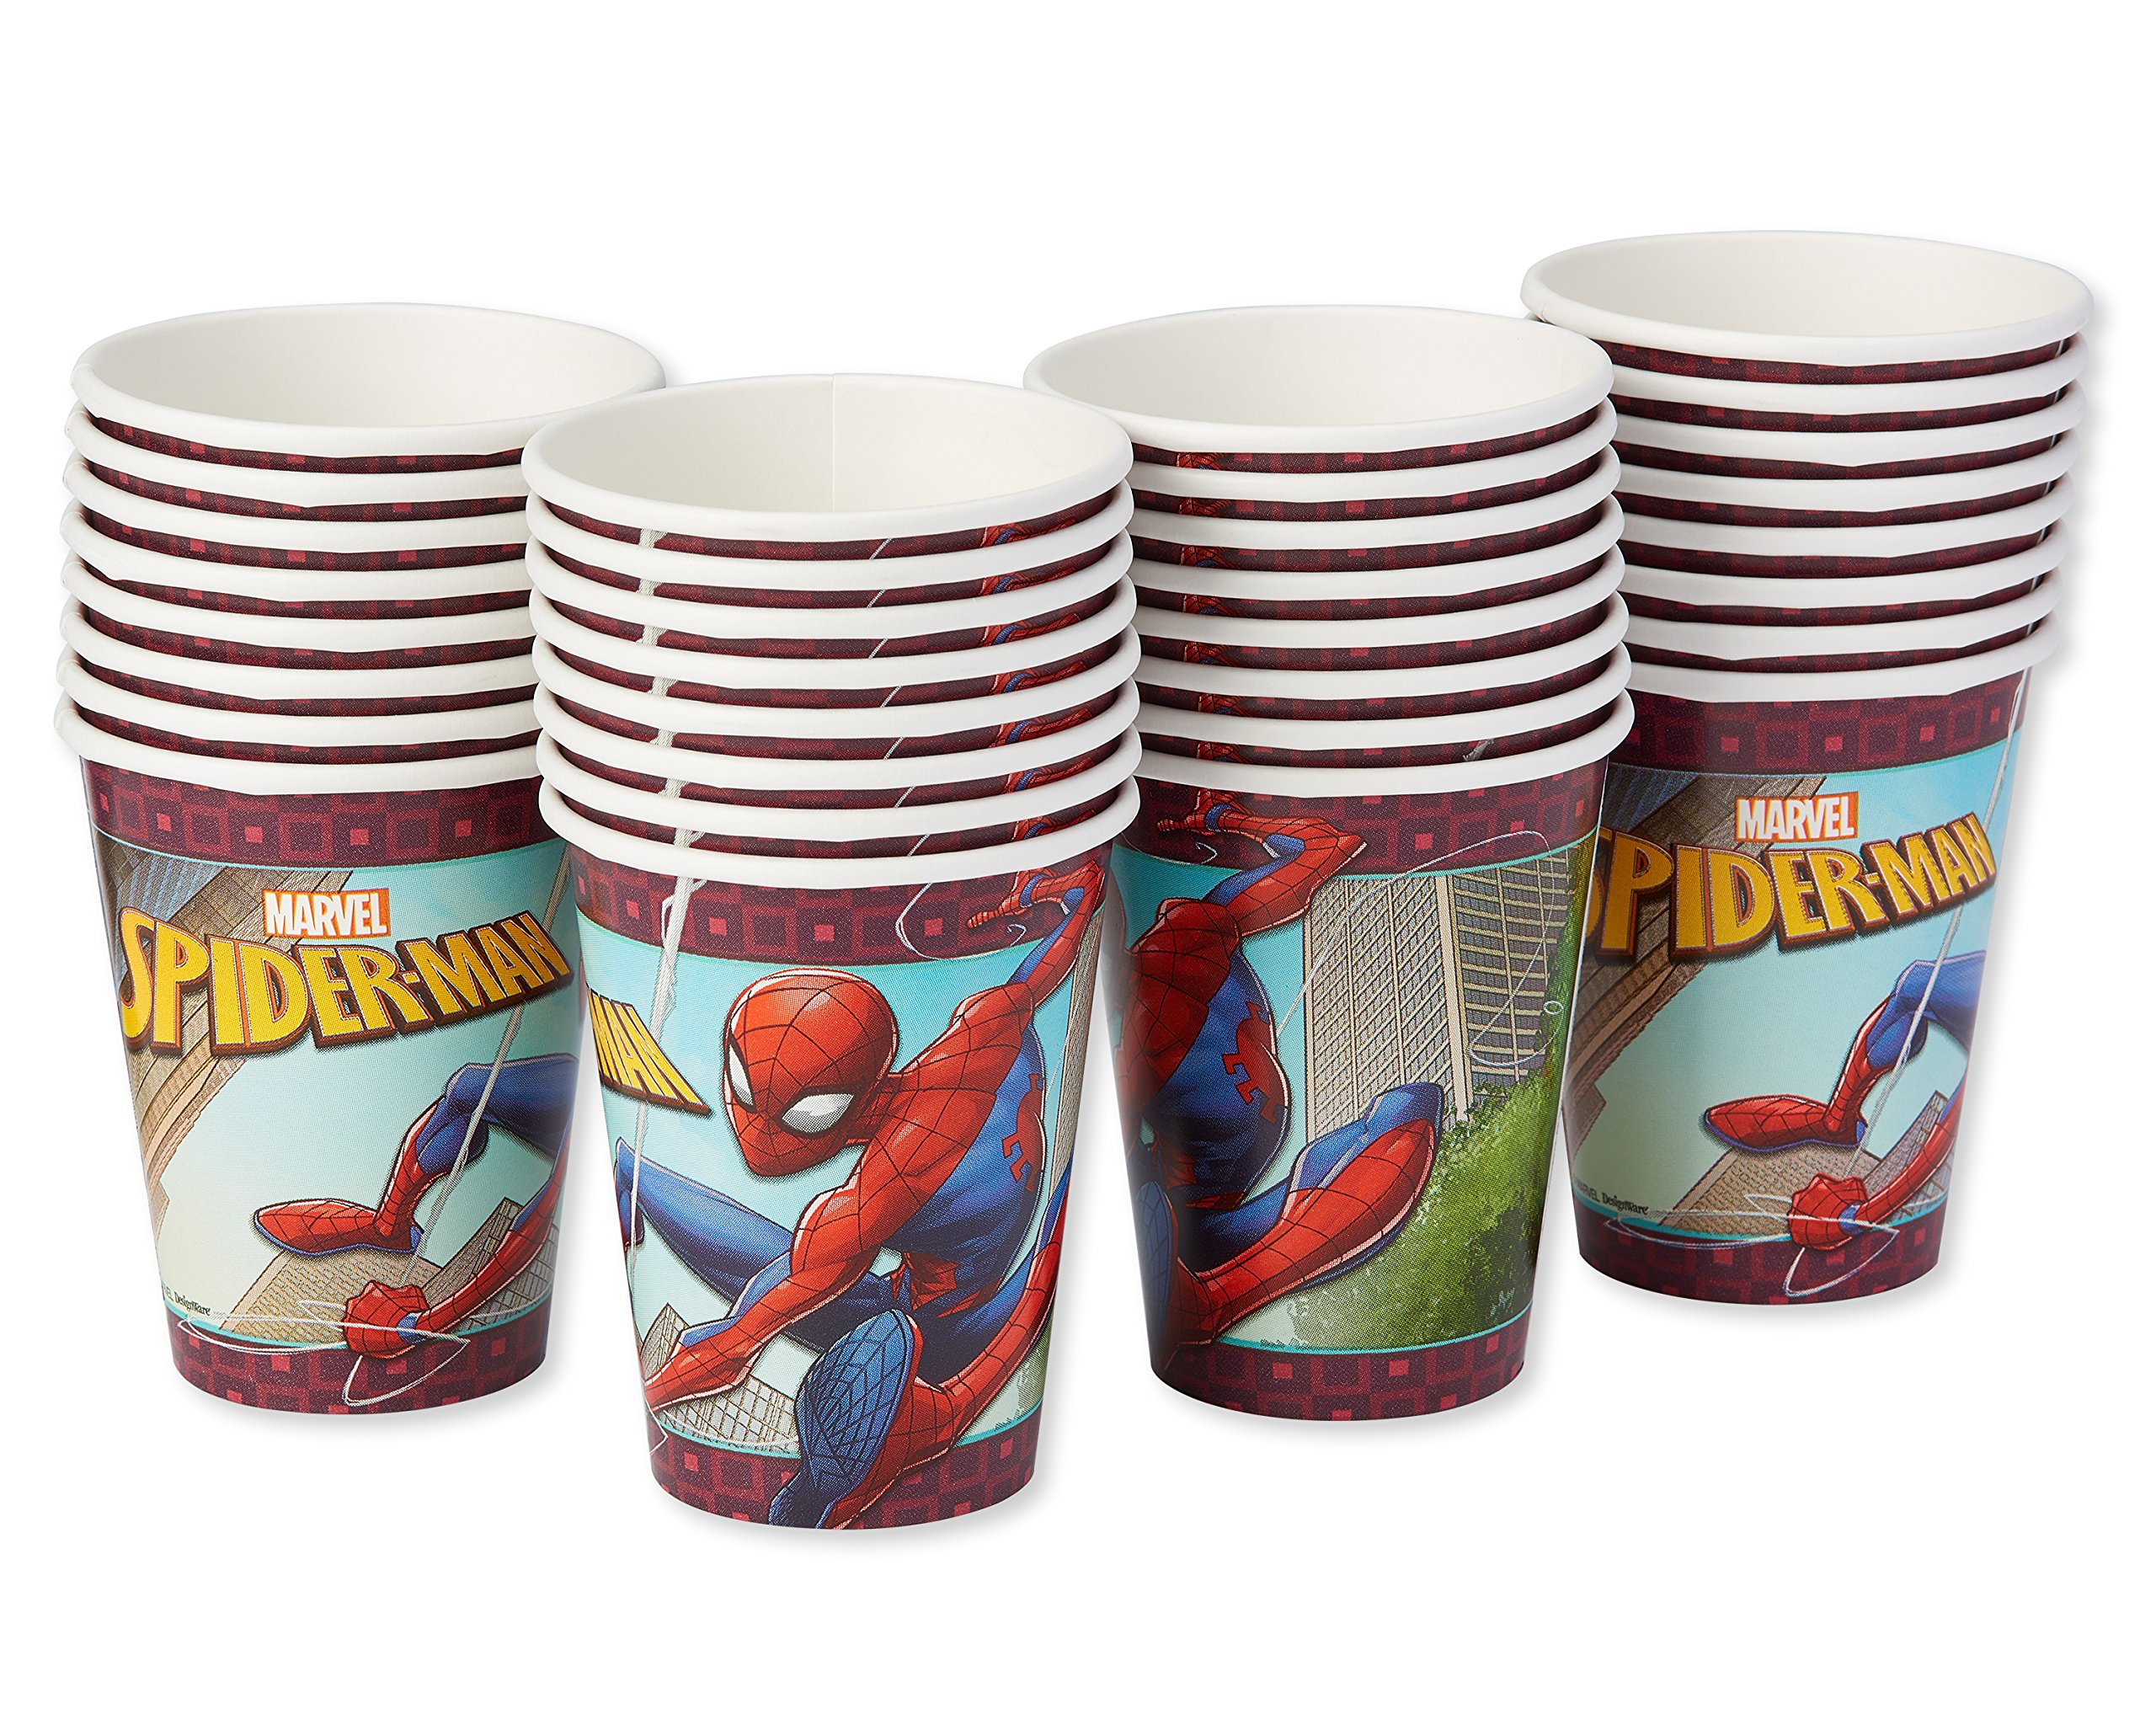 American Greetings Spider-Man 2 Paper Party Cups, Paper Cups, 32-Count